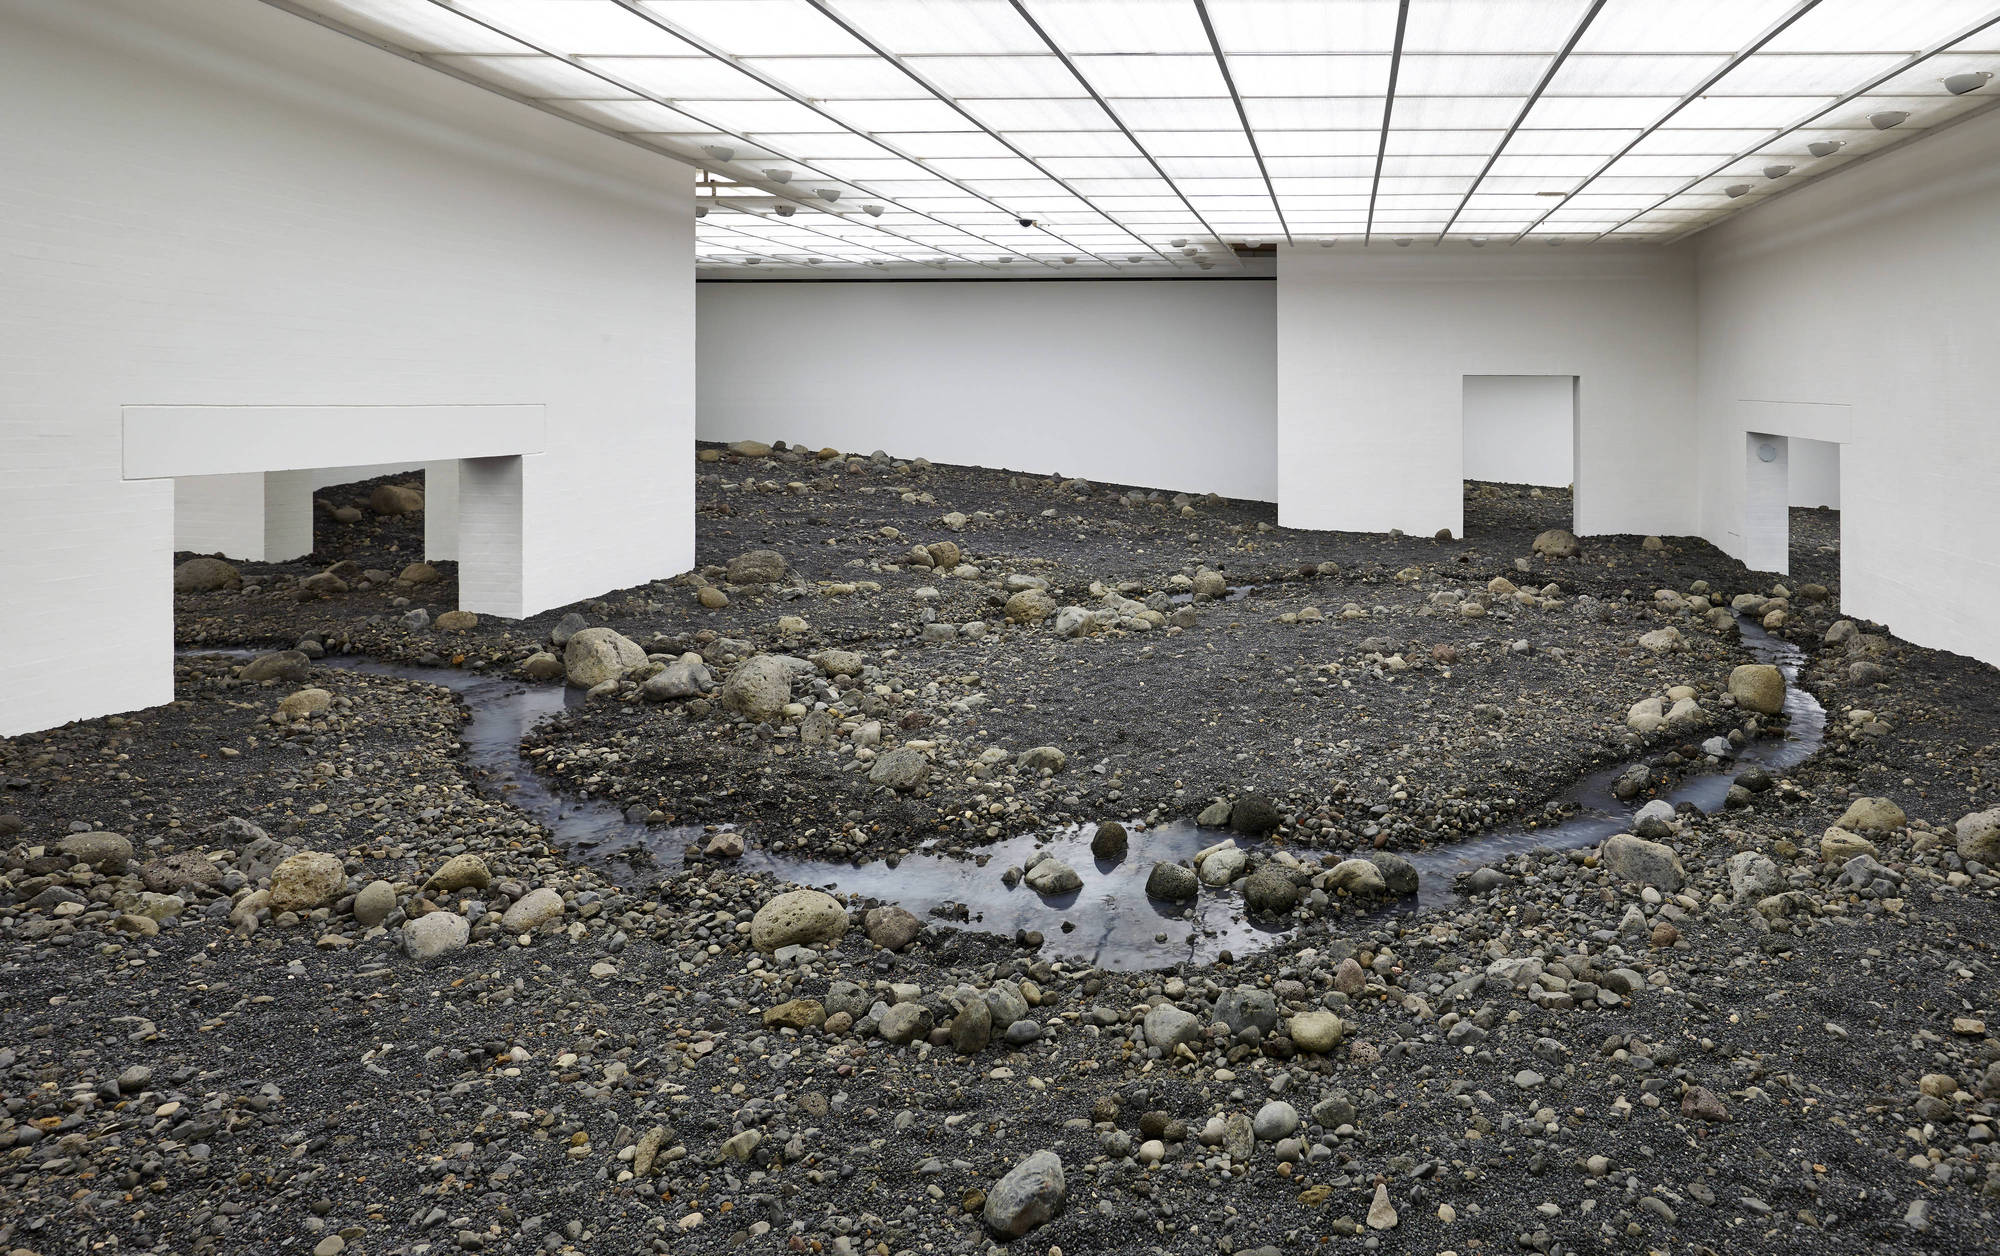 53f743acc07a80388e000717_olafur-eliasson-creates-an-indoor-riverbed-at-danish-museum_cf017216